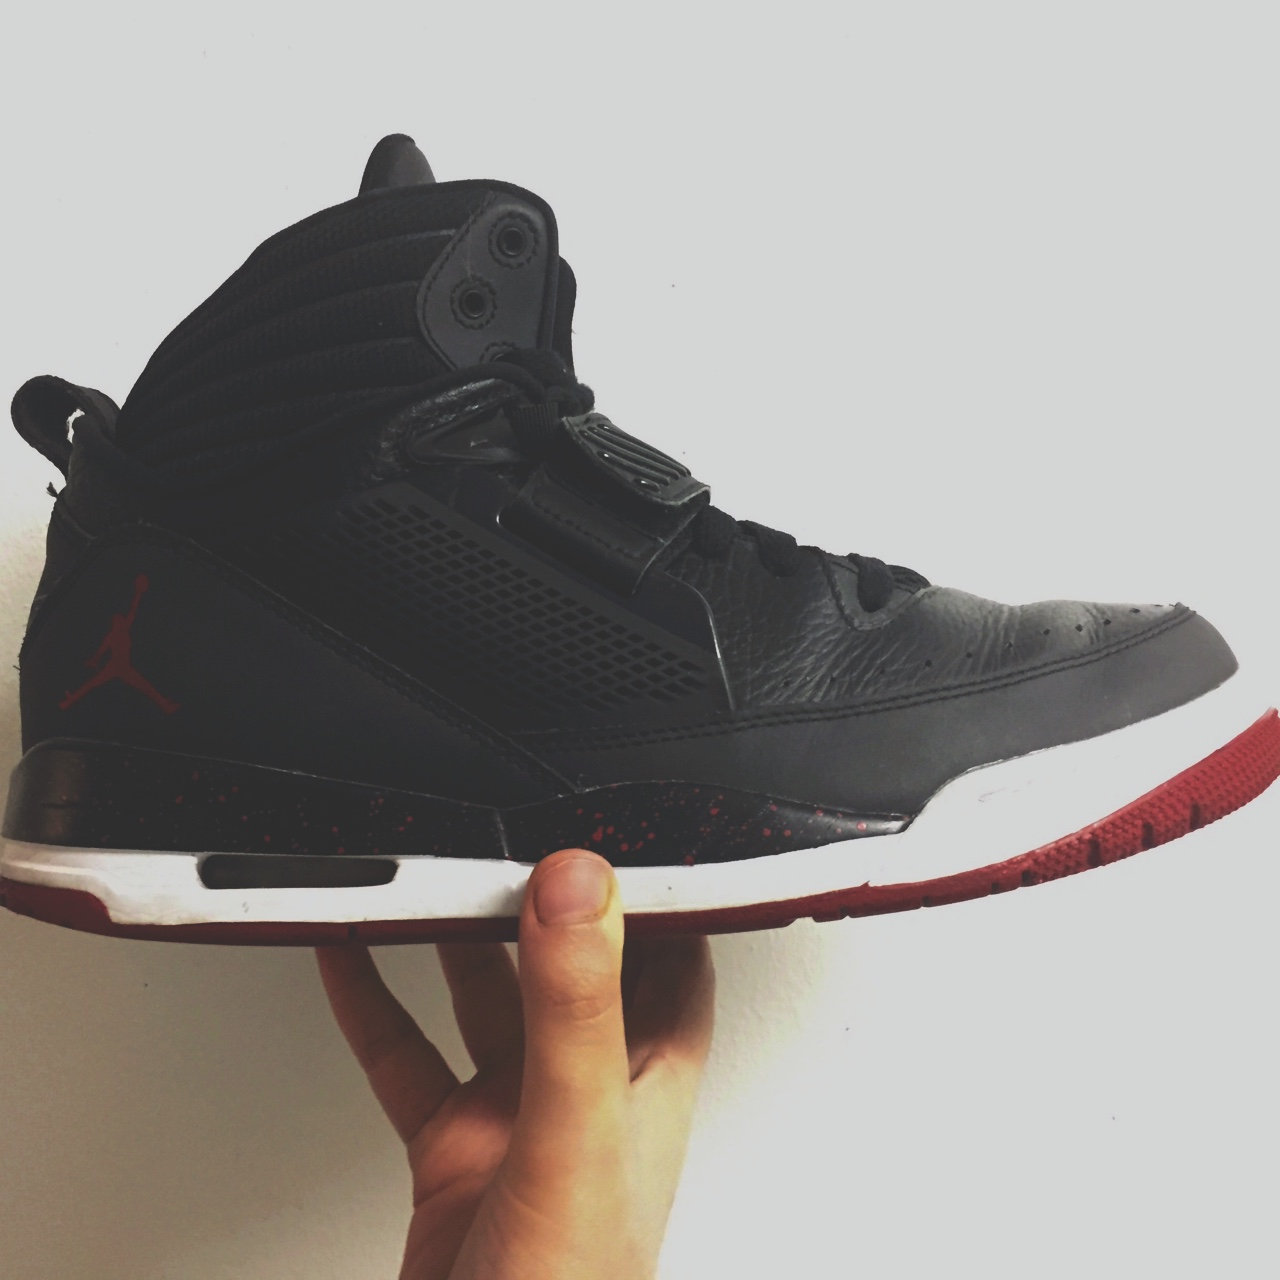 meilleures baskets 2a51f b8ccb Nike Air Jordan Flight 97 Bred in black and red.... - Depop